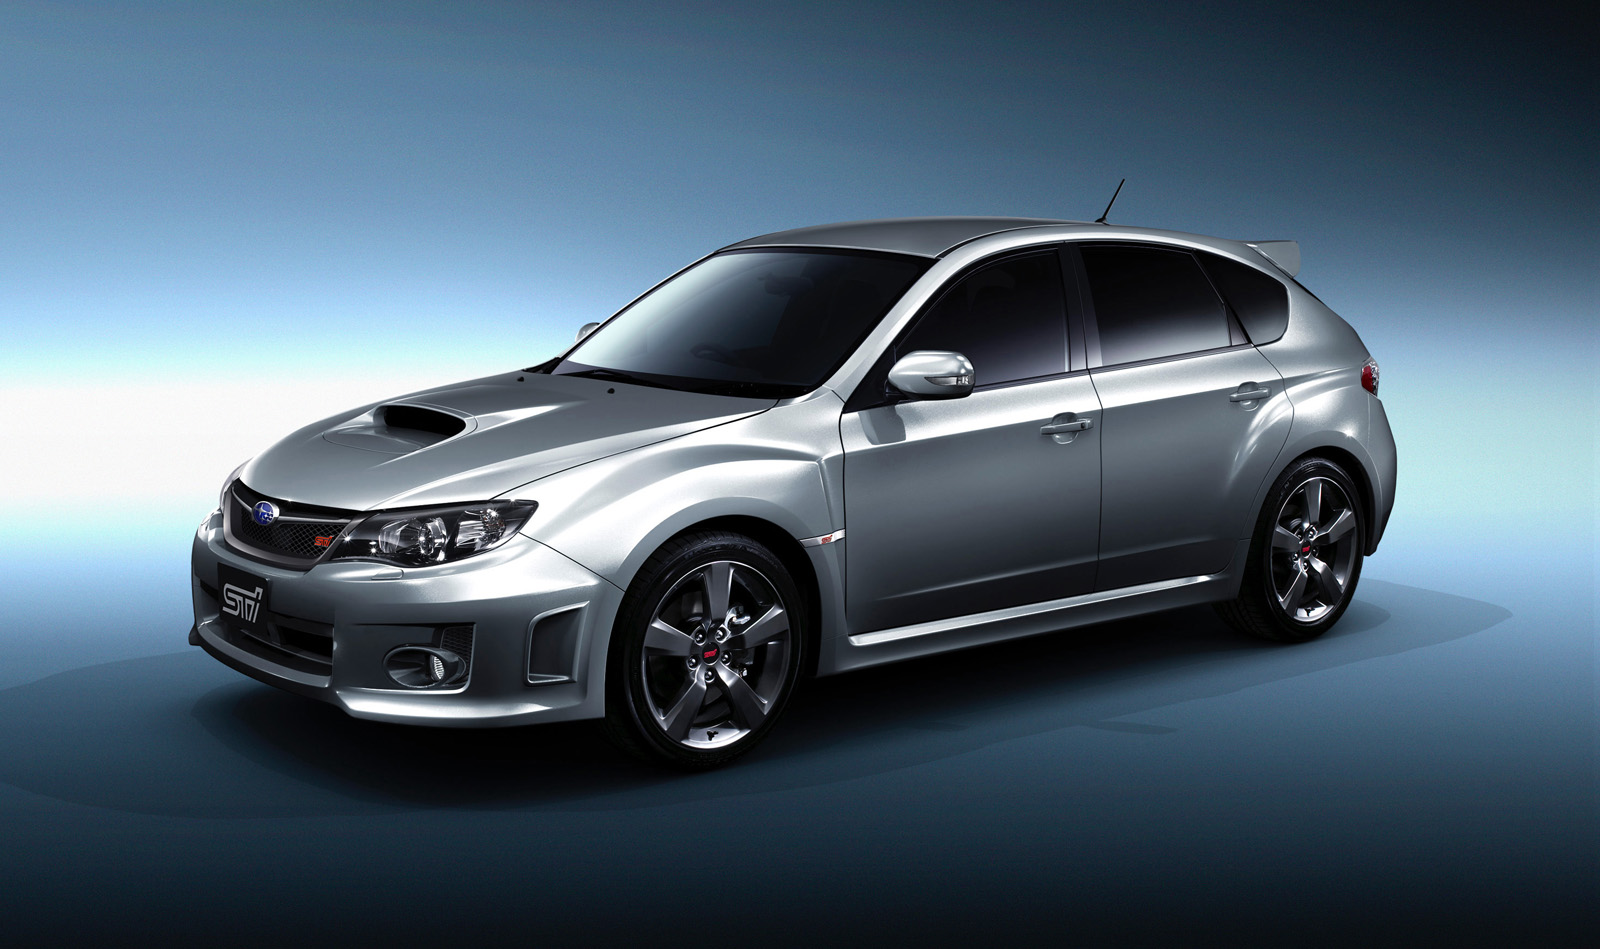 2011 subaru impreza wrx sti automatic photos caradvice. Black Bedroom Furniture Sets. Home Design Ideas